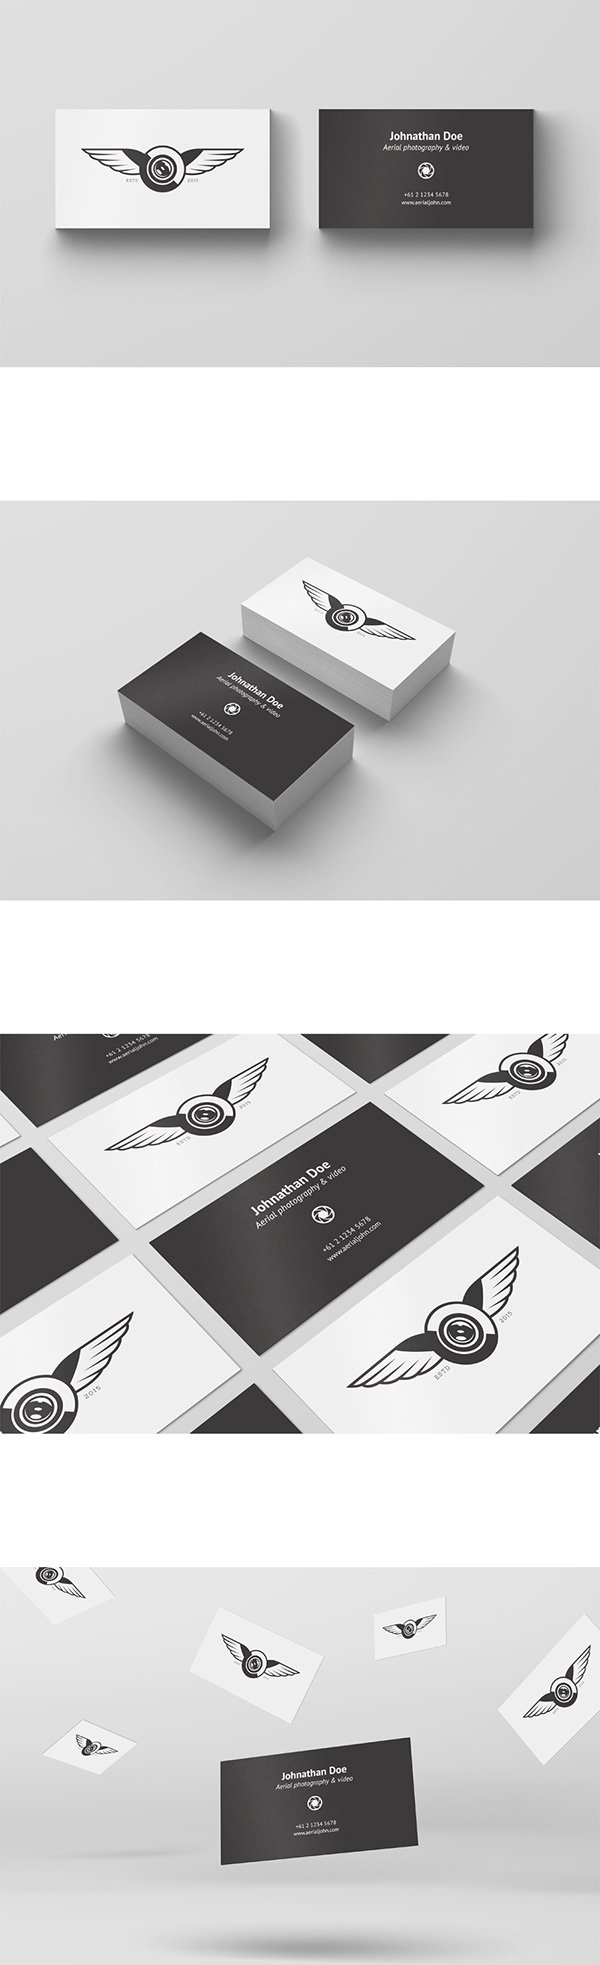 115 free business card mockups 4 free business card mockup reheart Choice Image